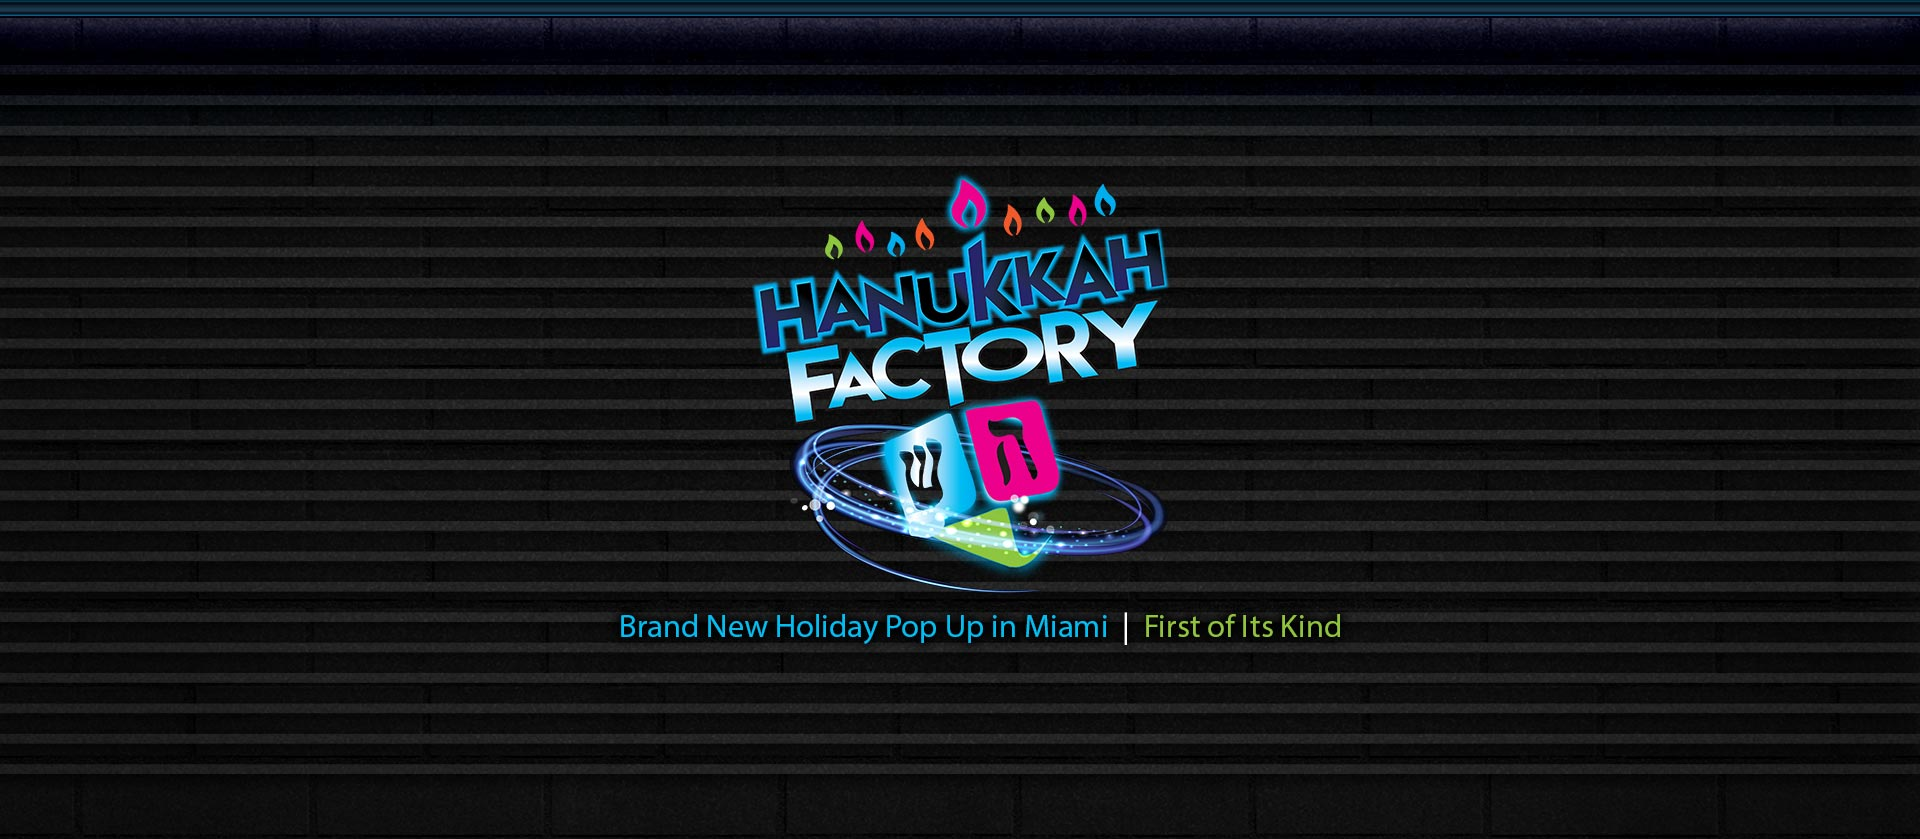 Find tickets from Hanukkah Factory